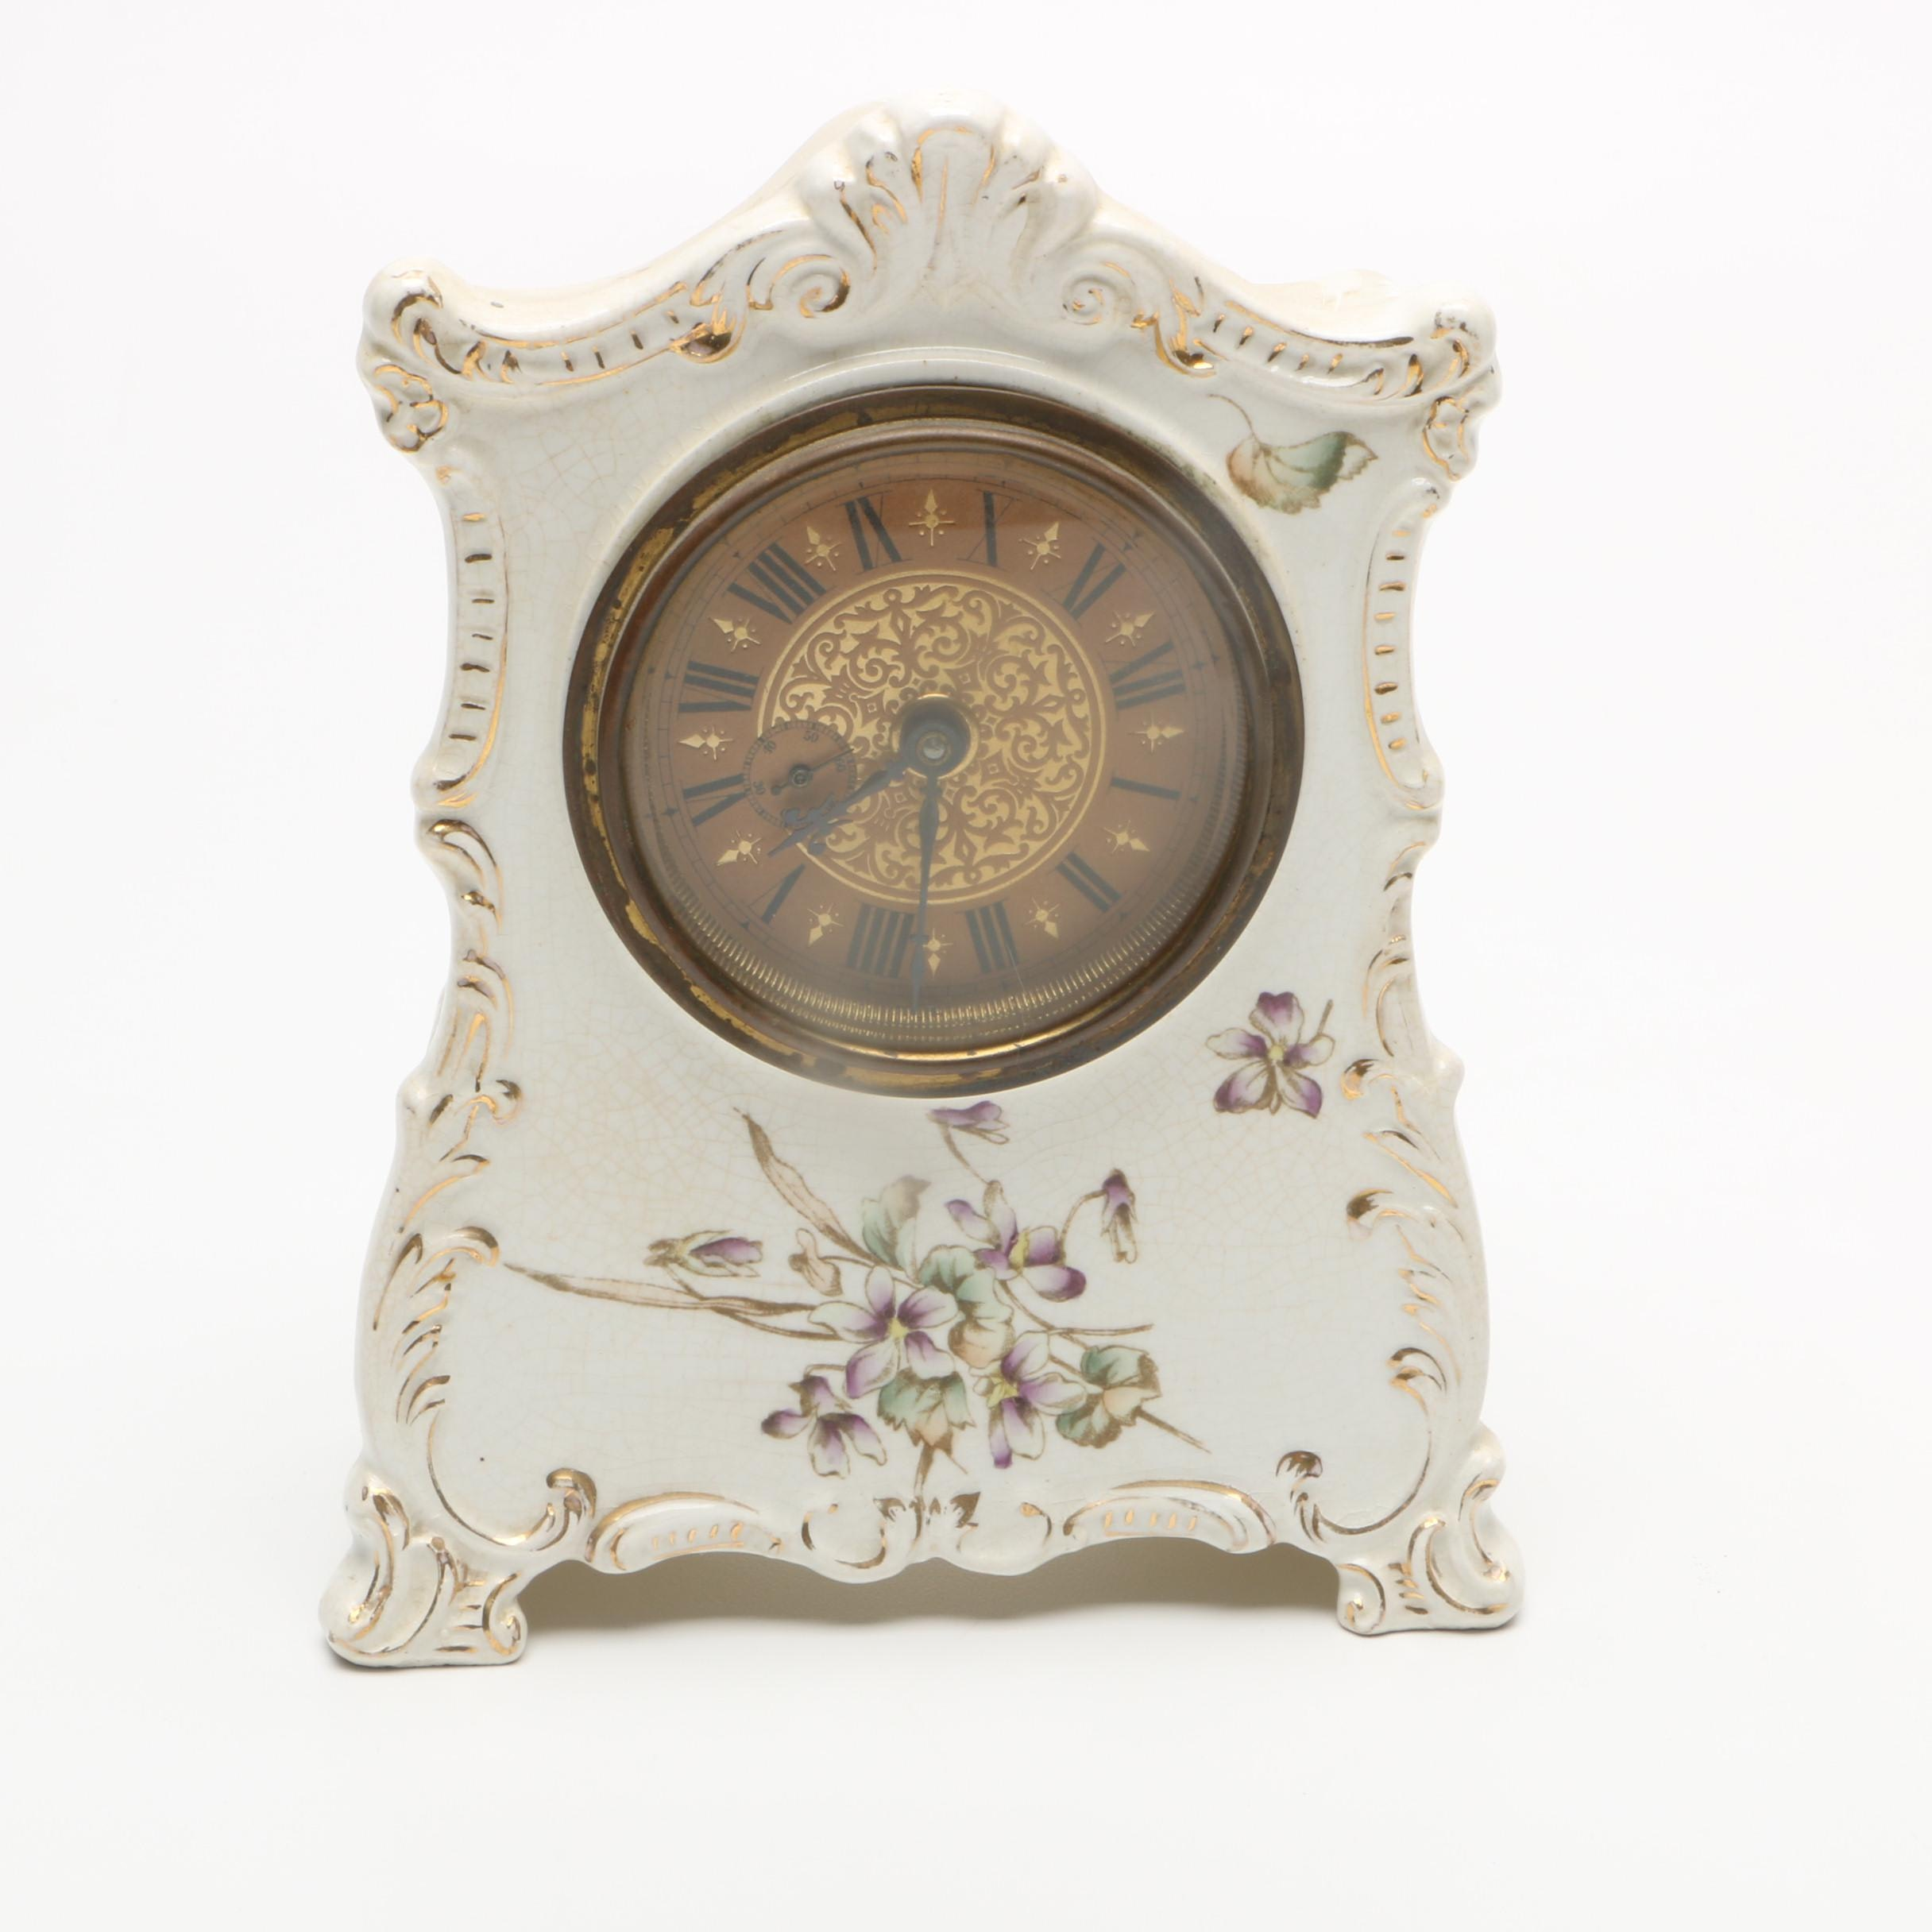 Vintage Ornate Porcelain Mantel Clock